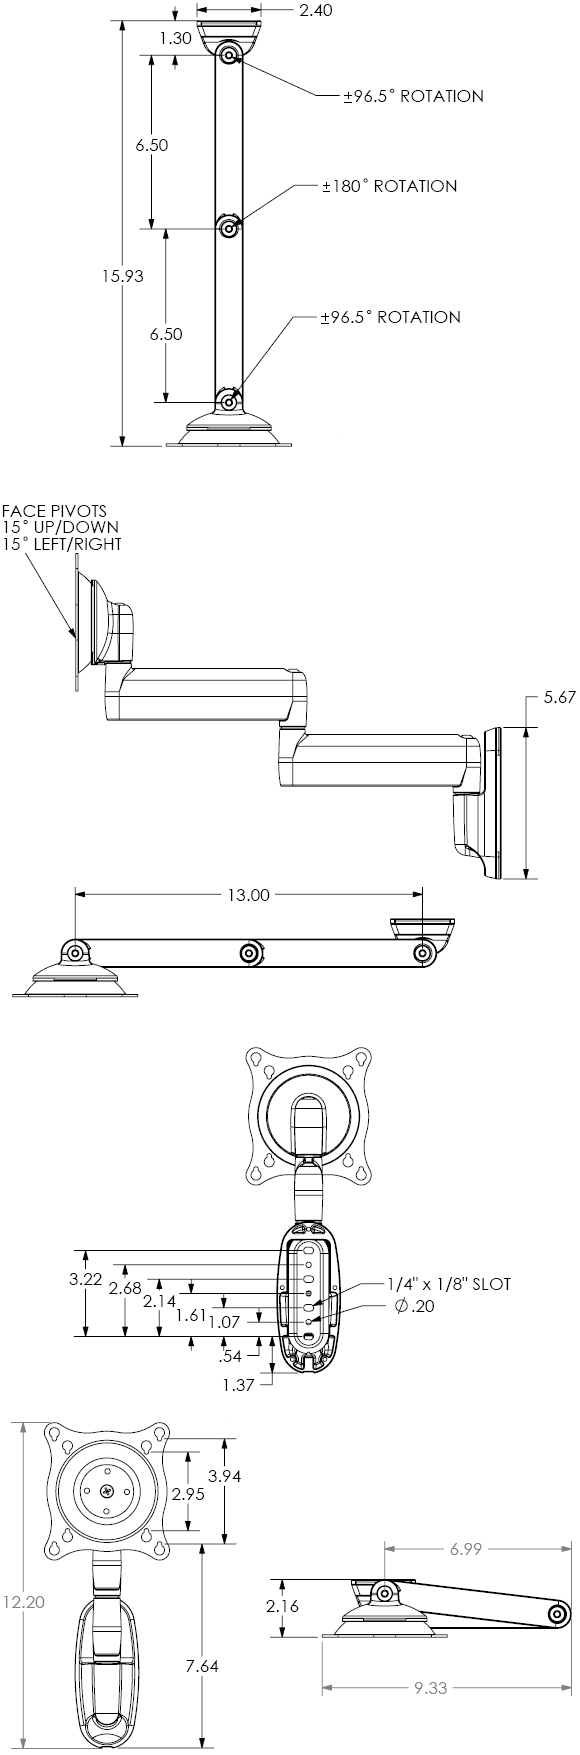 Technical Drawing for Chief FWD Wall Mount Flat Panel Dual Swing LCD Arm